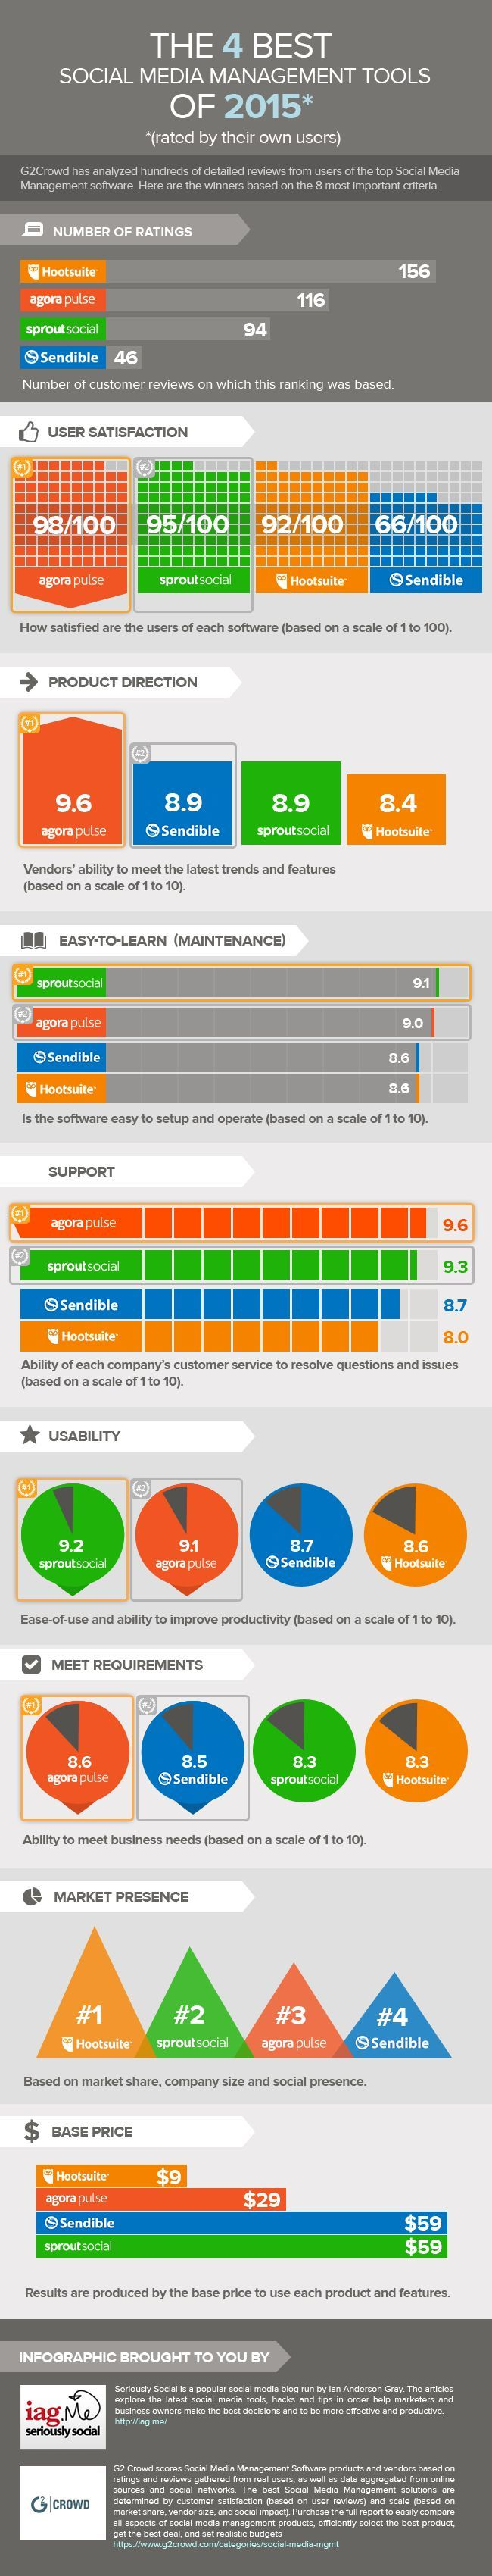 This infographic is a great place to start your research into social media management tools. It's based on real reviews from users of each tool and shows how the four top performing social media tools (Hootsuite, AgoraPulse, Sprout Social, and Sendible) measure up against each other.